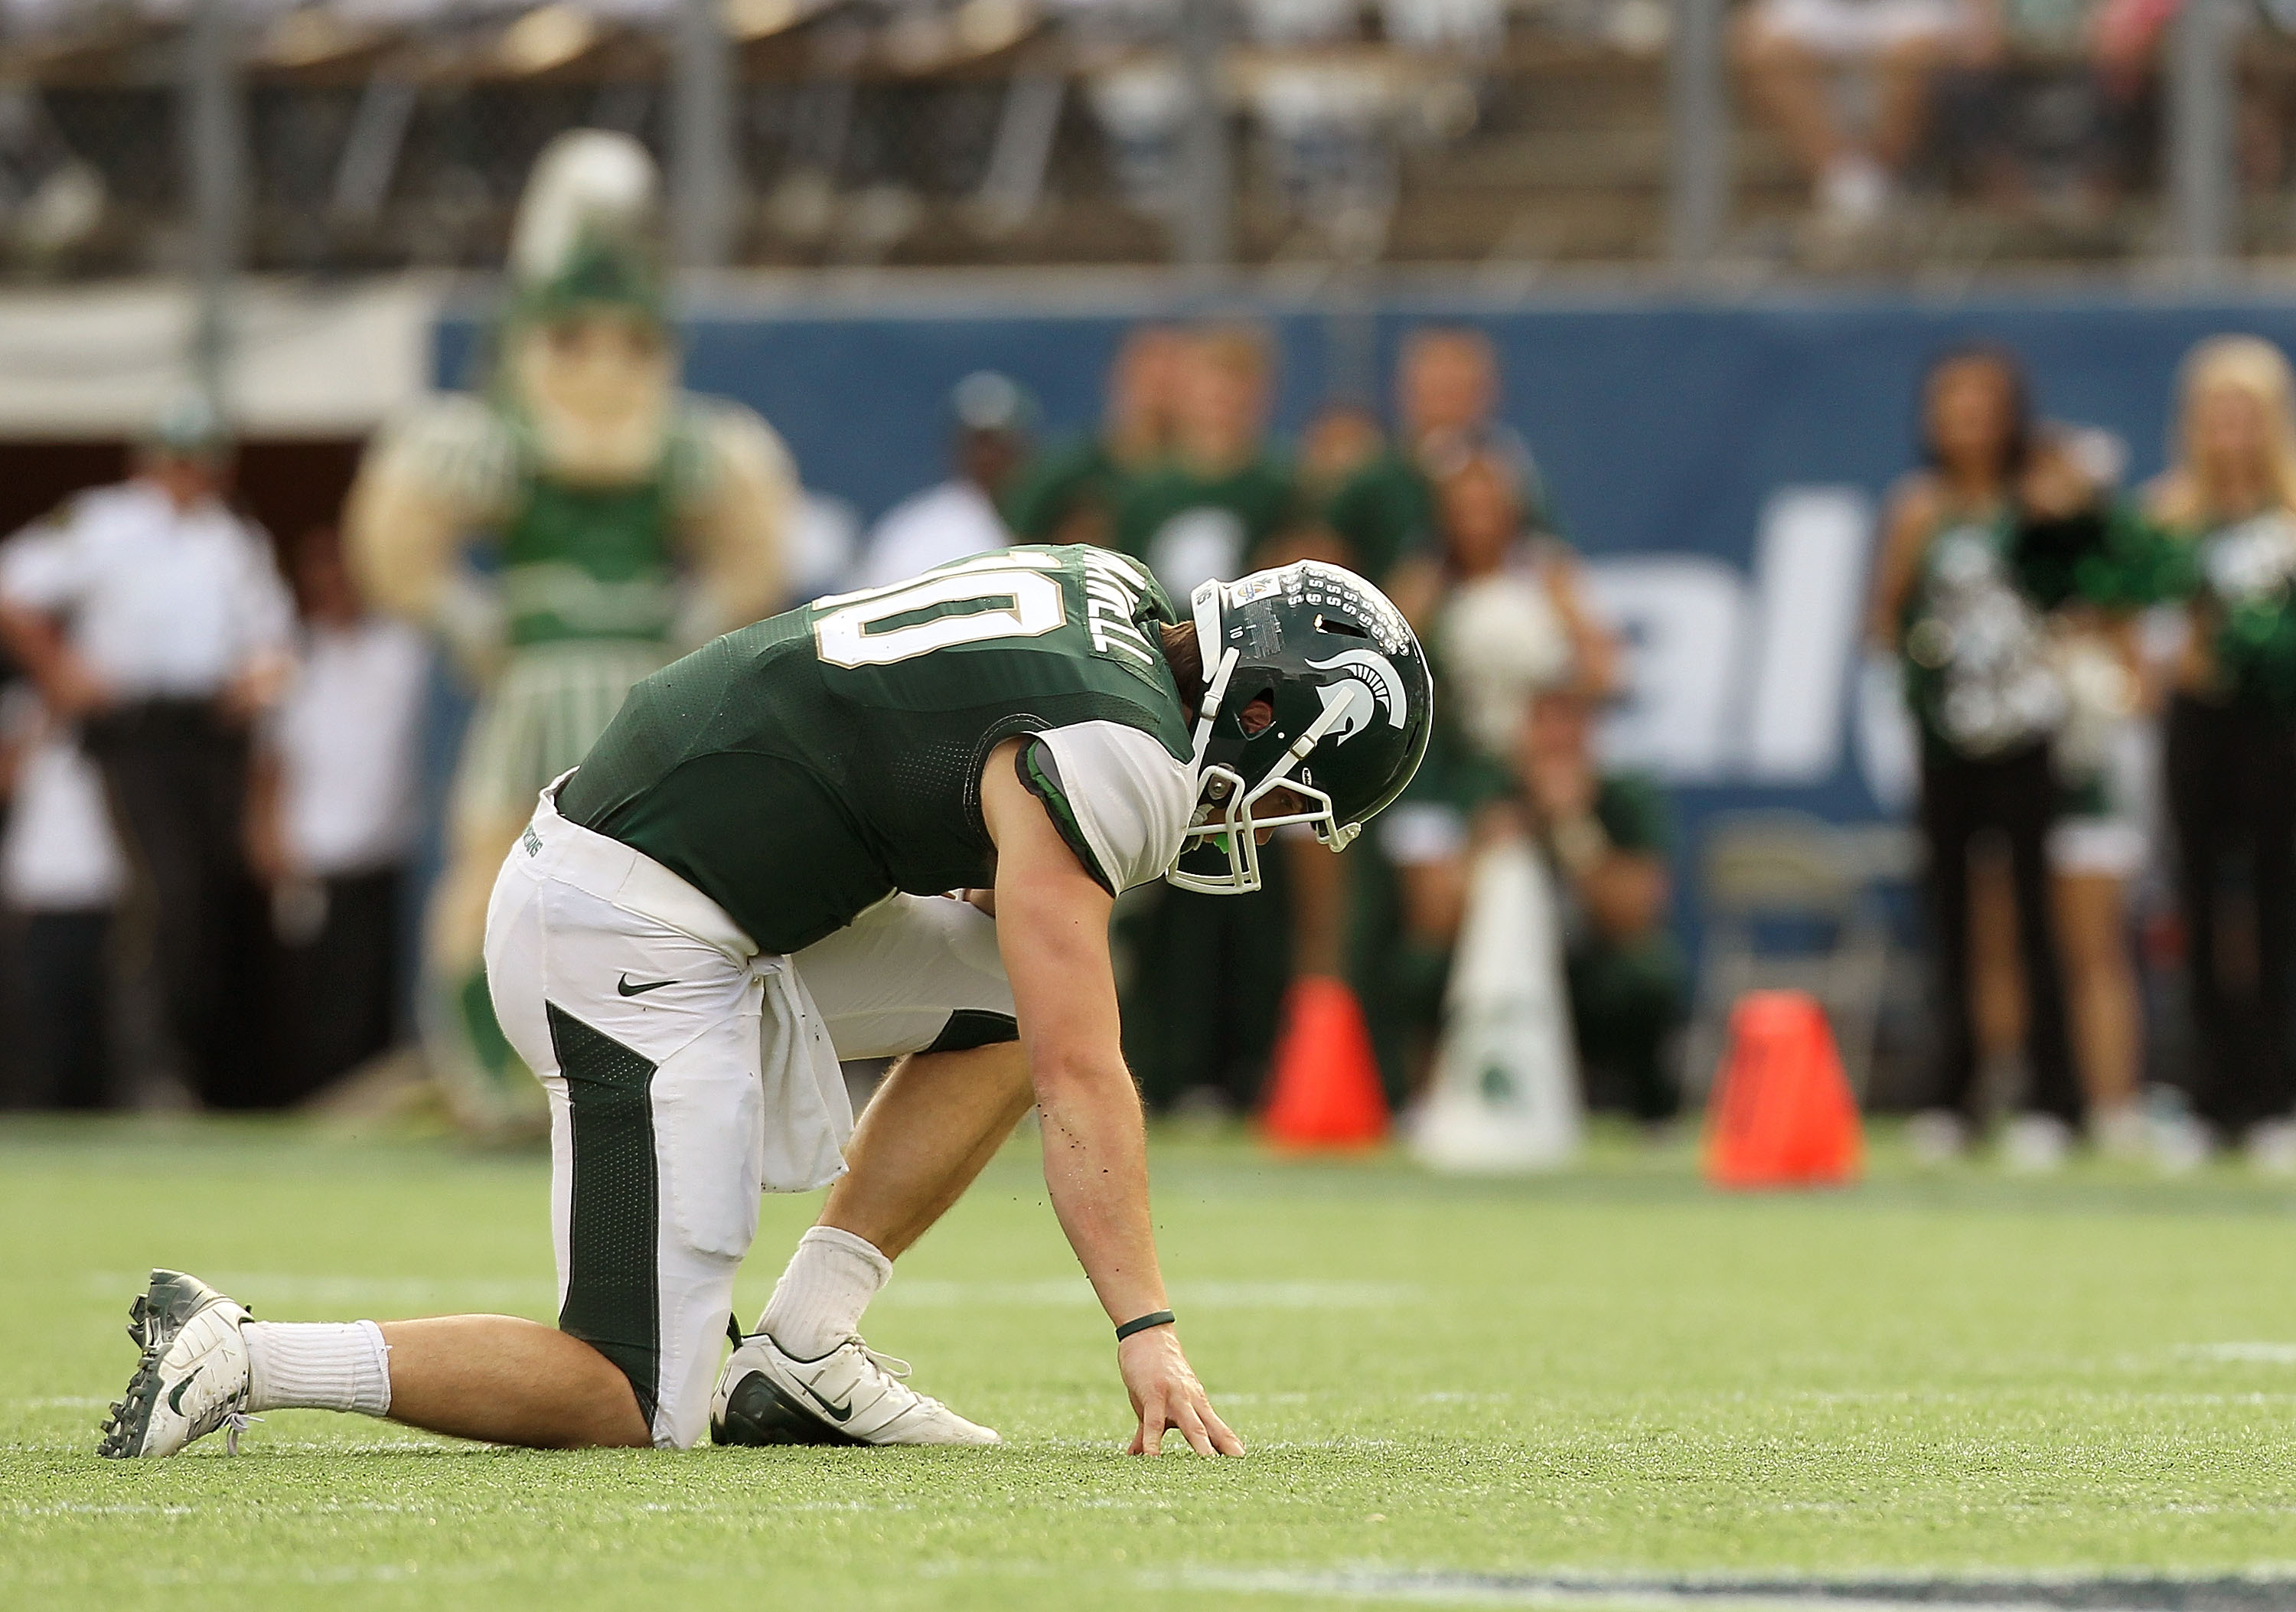 ORLANDO, FL - JANUARY 01:  Andrew Maxwell #10 of the Michigan State Spartans is shaken up on a play during the Capitol One Bowl against the Alabama Crimson Tide at the Florida Citrus Bowl on January 1, 2011 in Orlando, Florida.  (Photo by Mike Ehrmann/Get